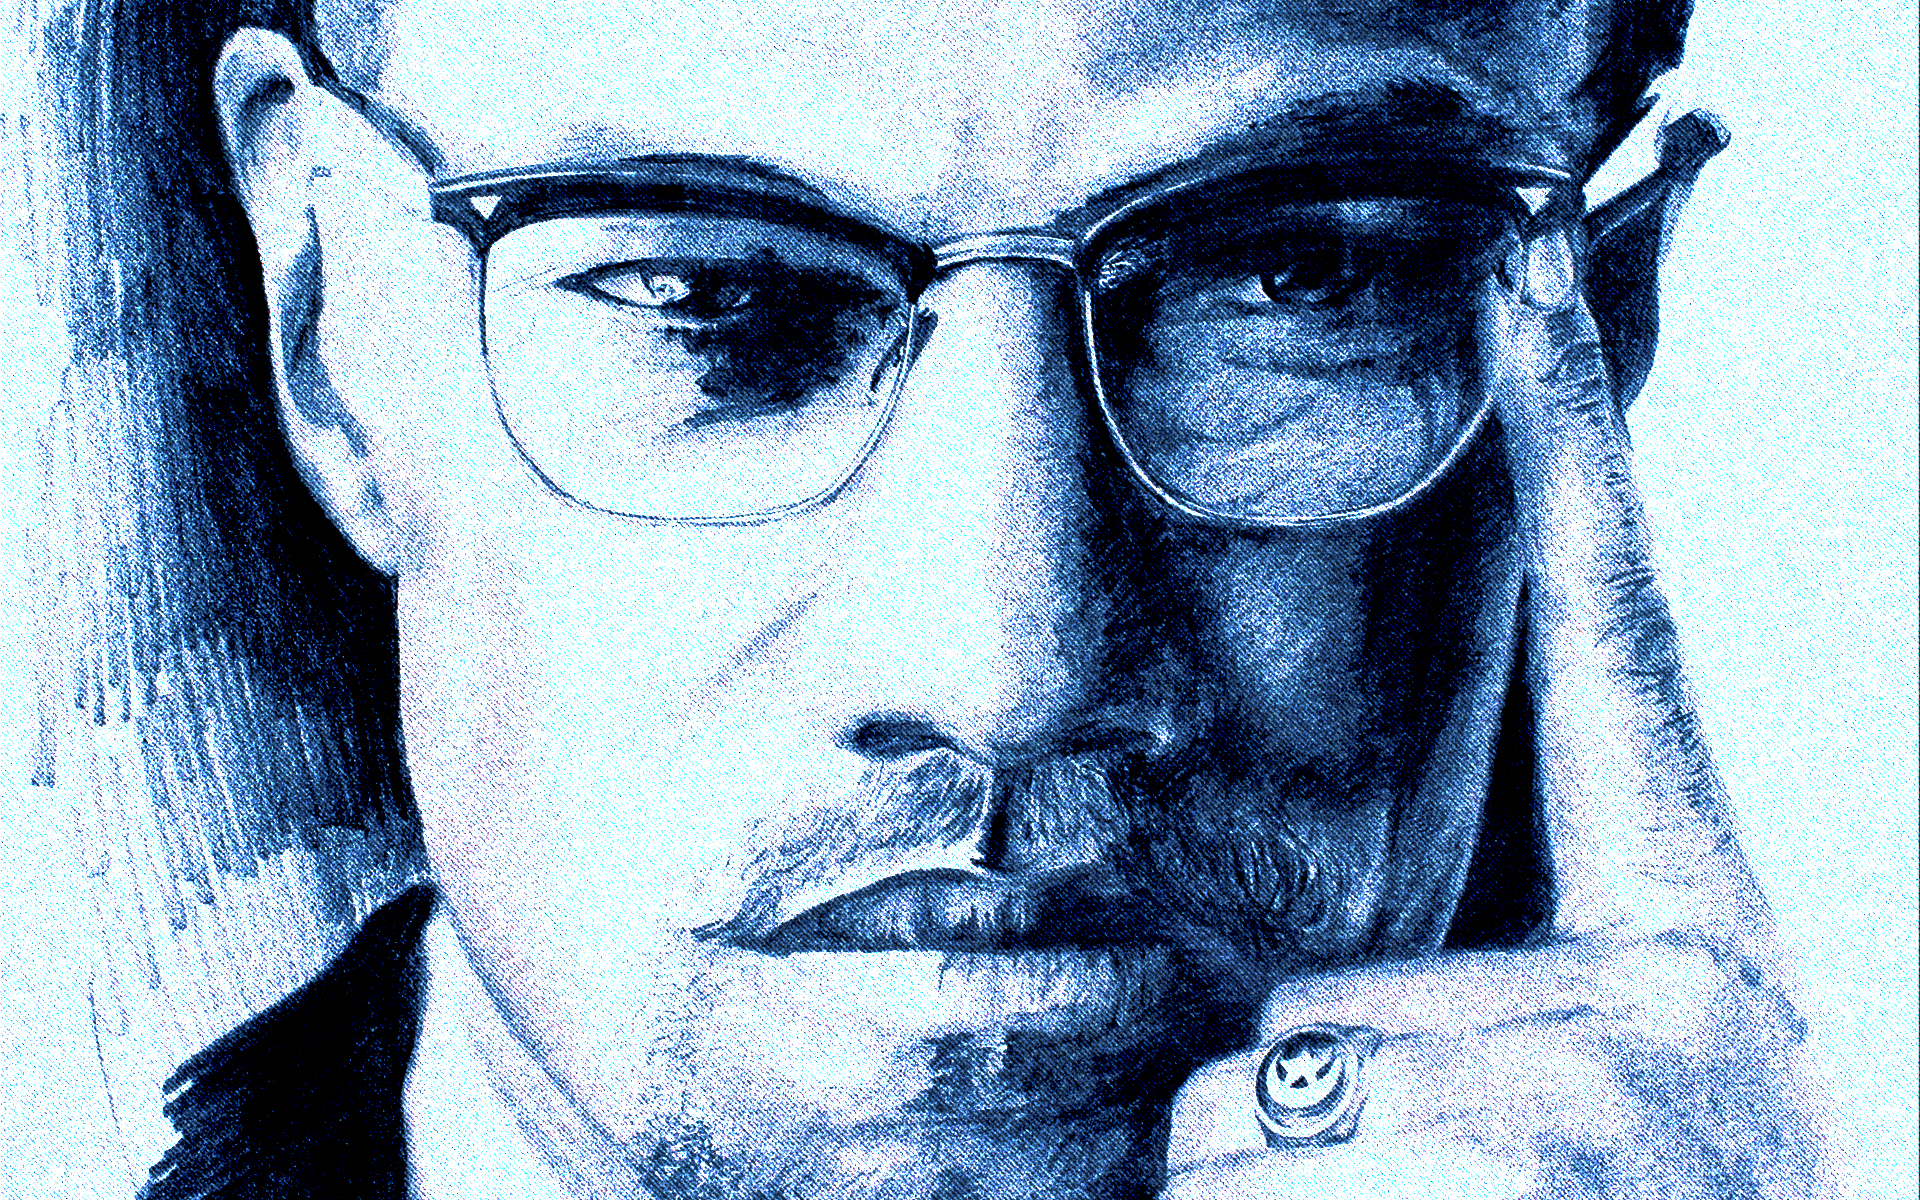 malcolm x desktop and mobile wallpaper wallippo